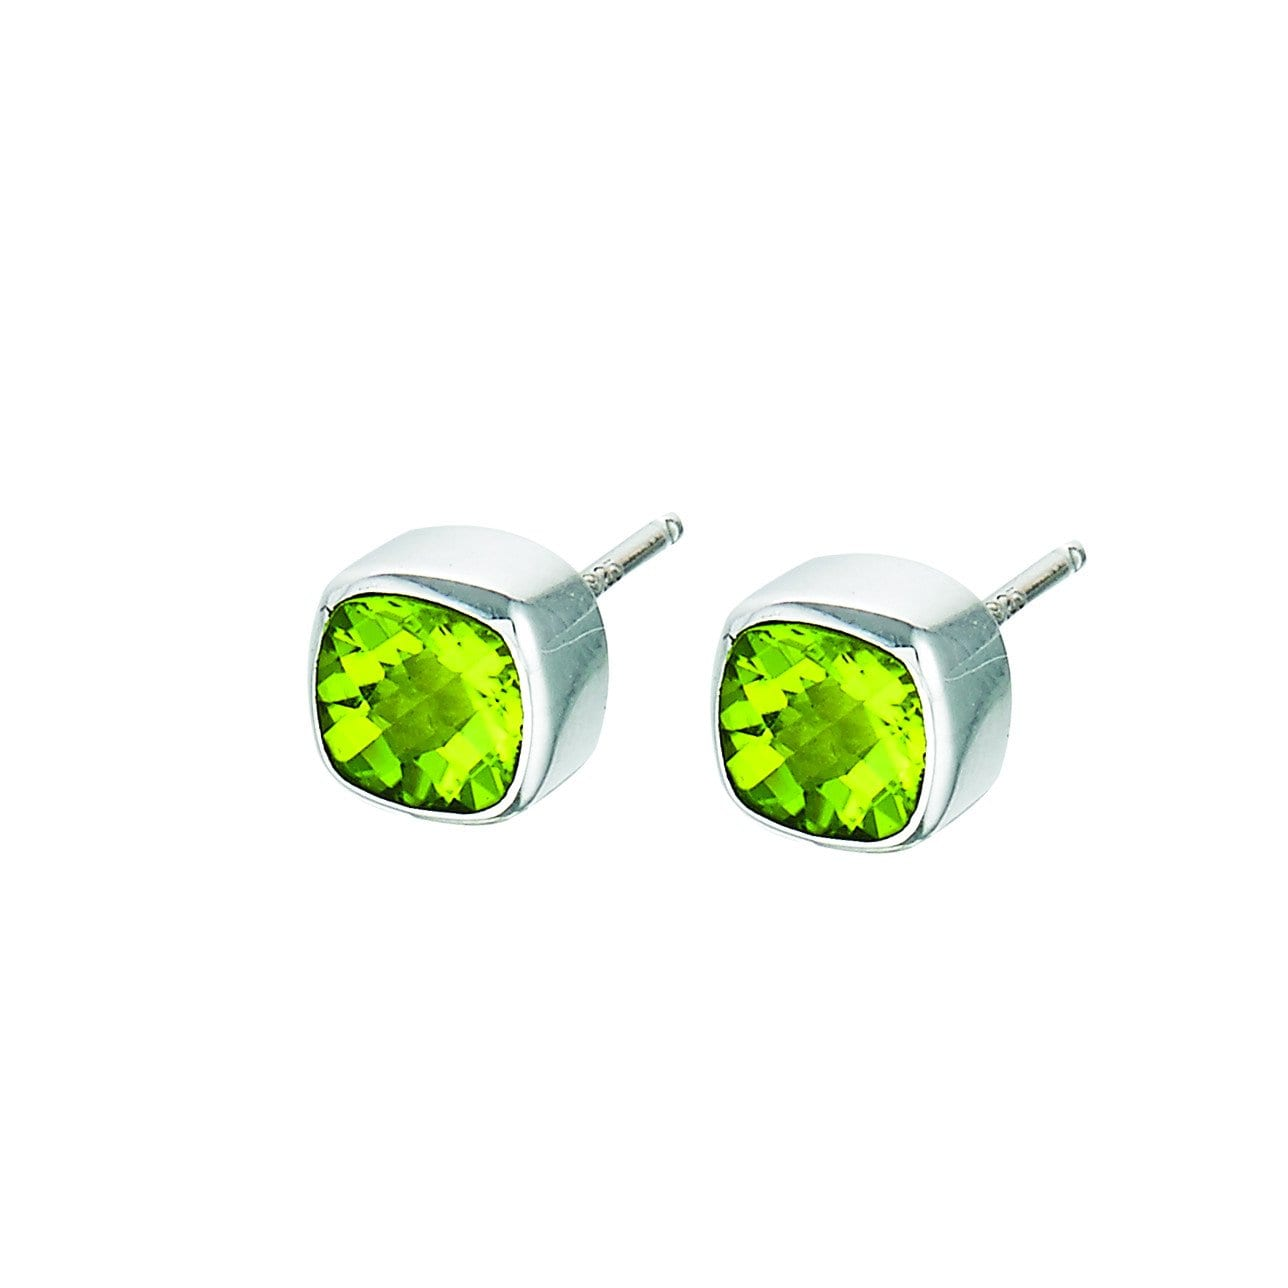 silver zm designers peridot mv earrings sterling pandora jar